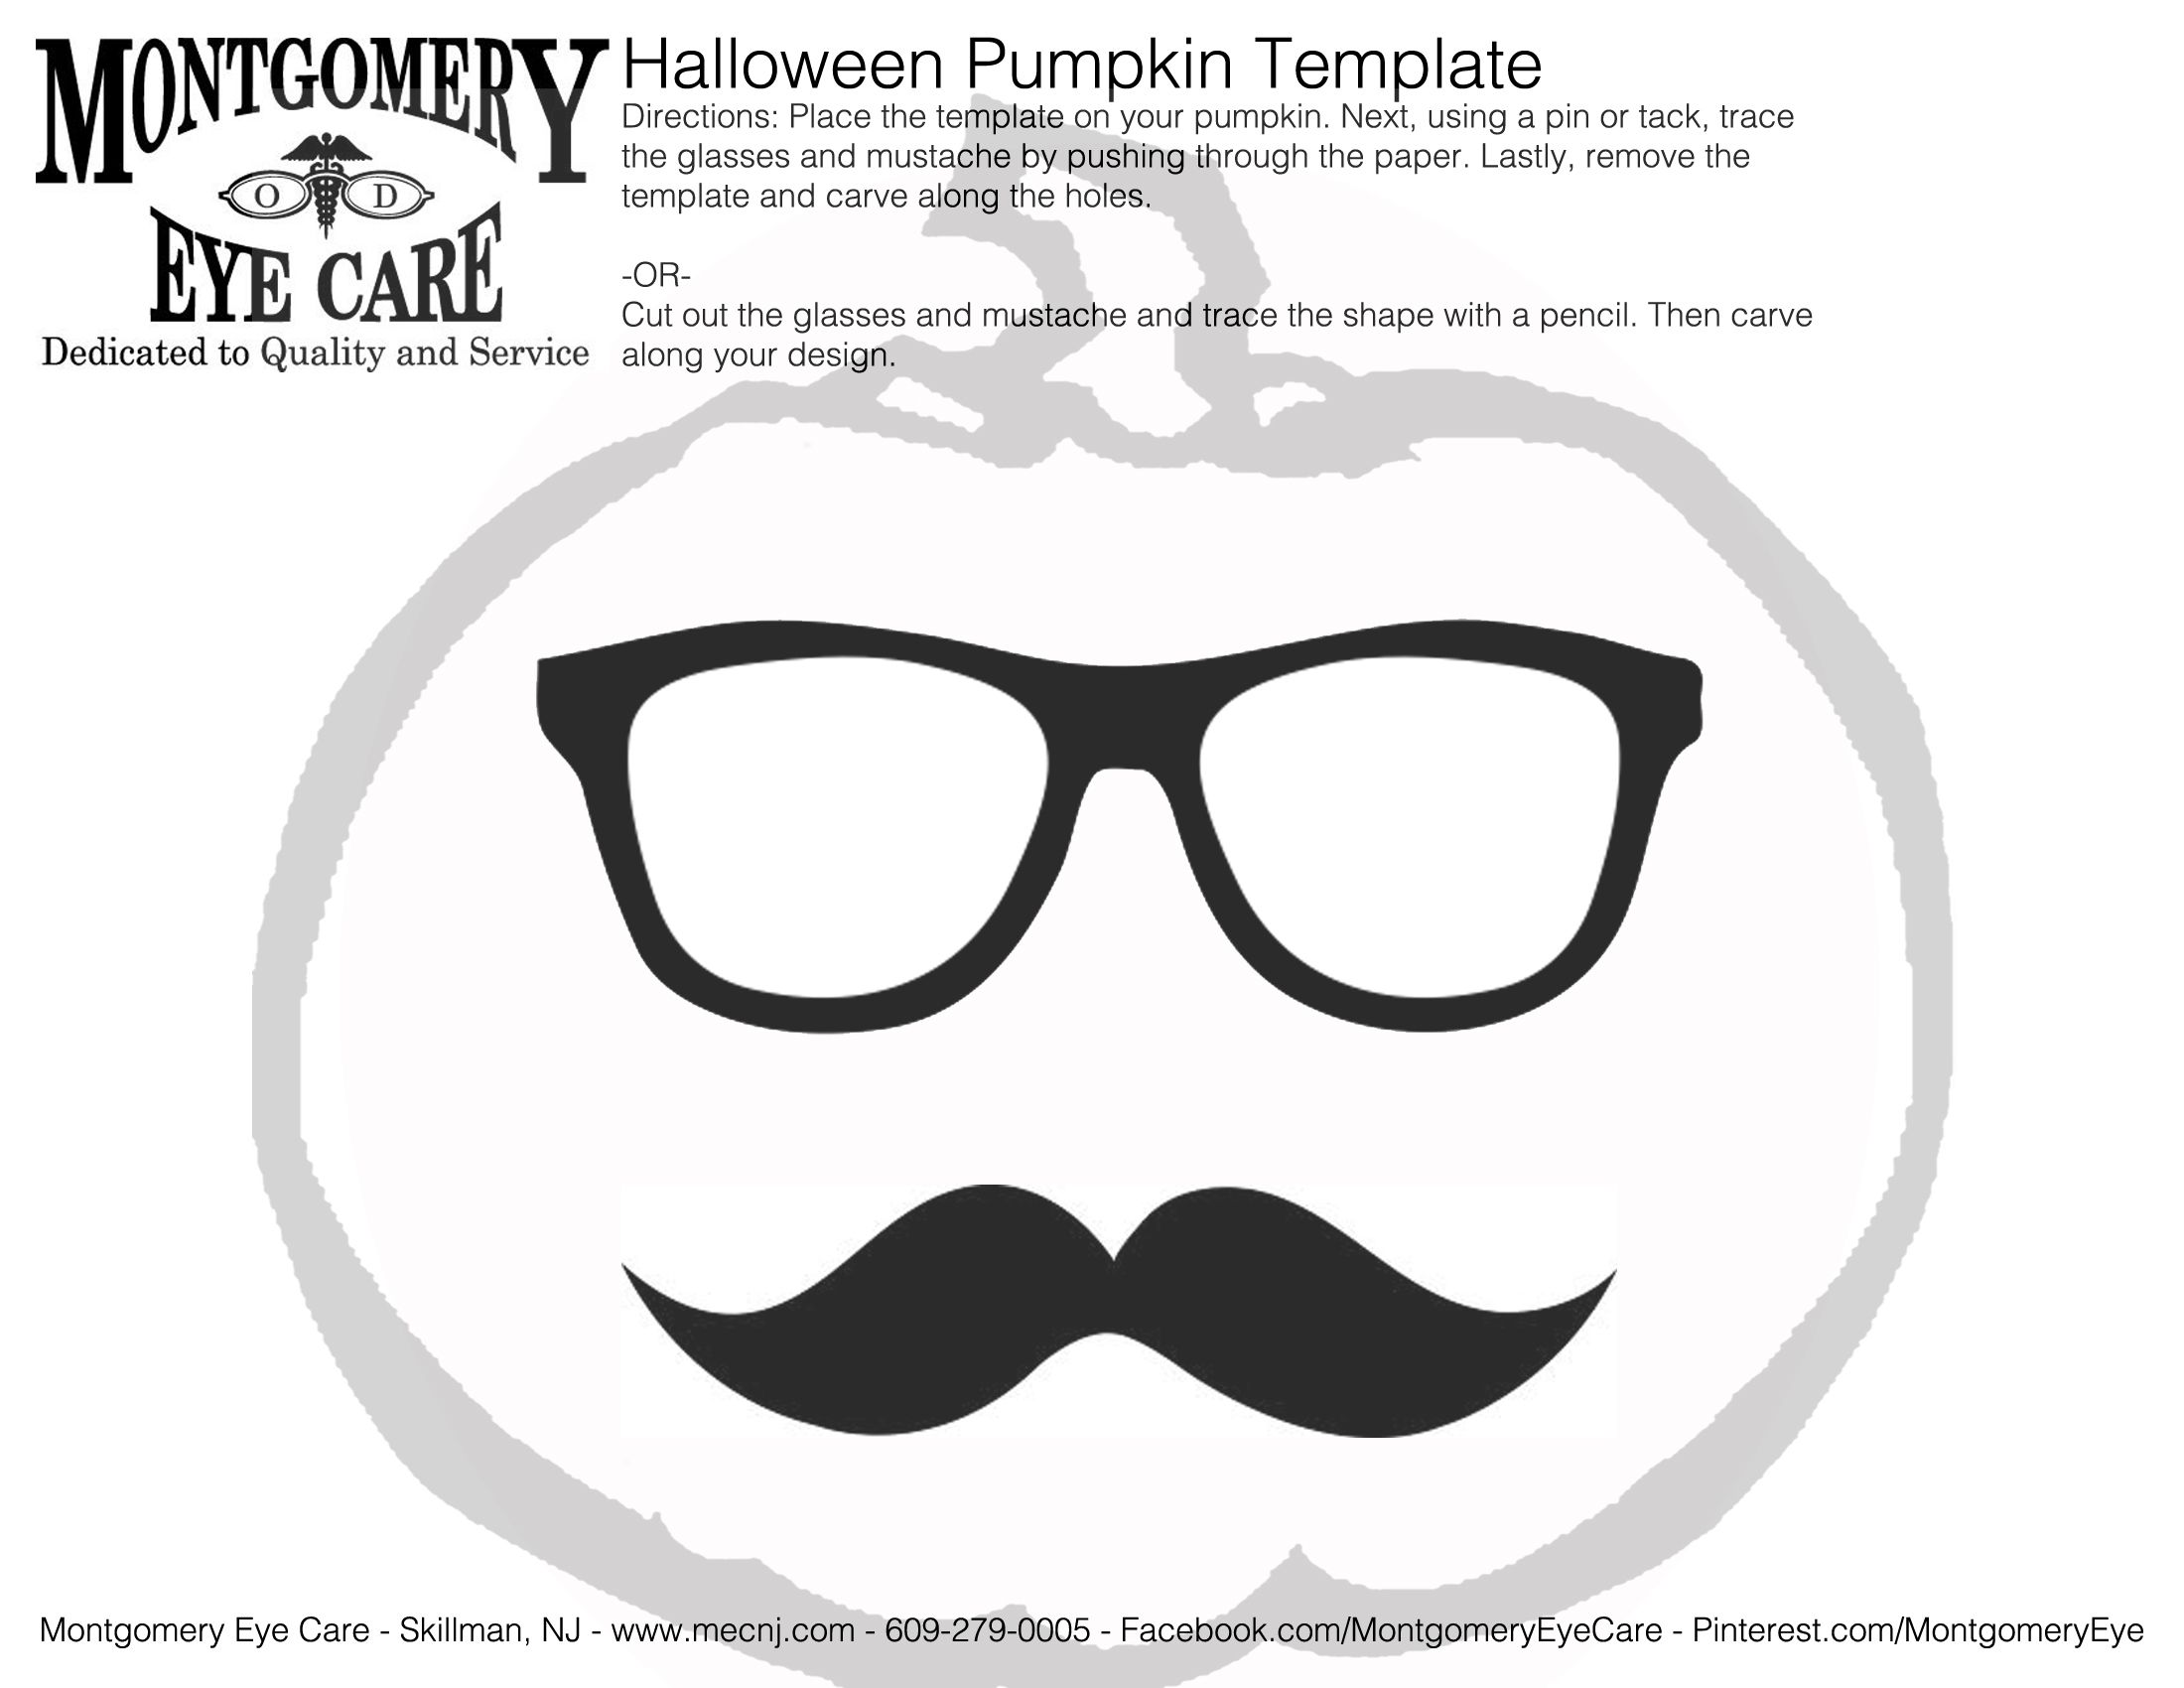 Halloween Pumpkin Carving Templates #geekchic #mustache #glasses ...